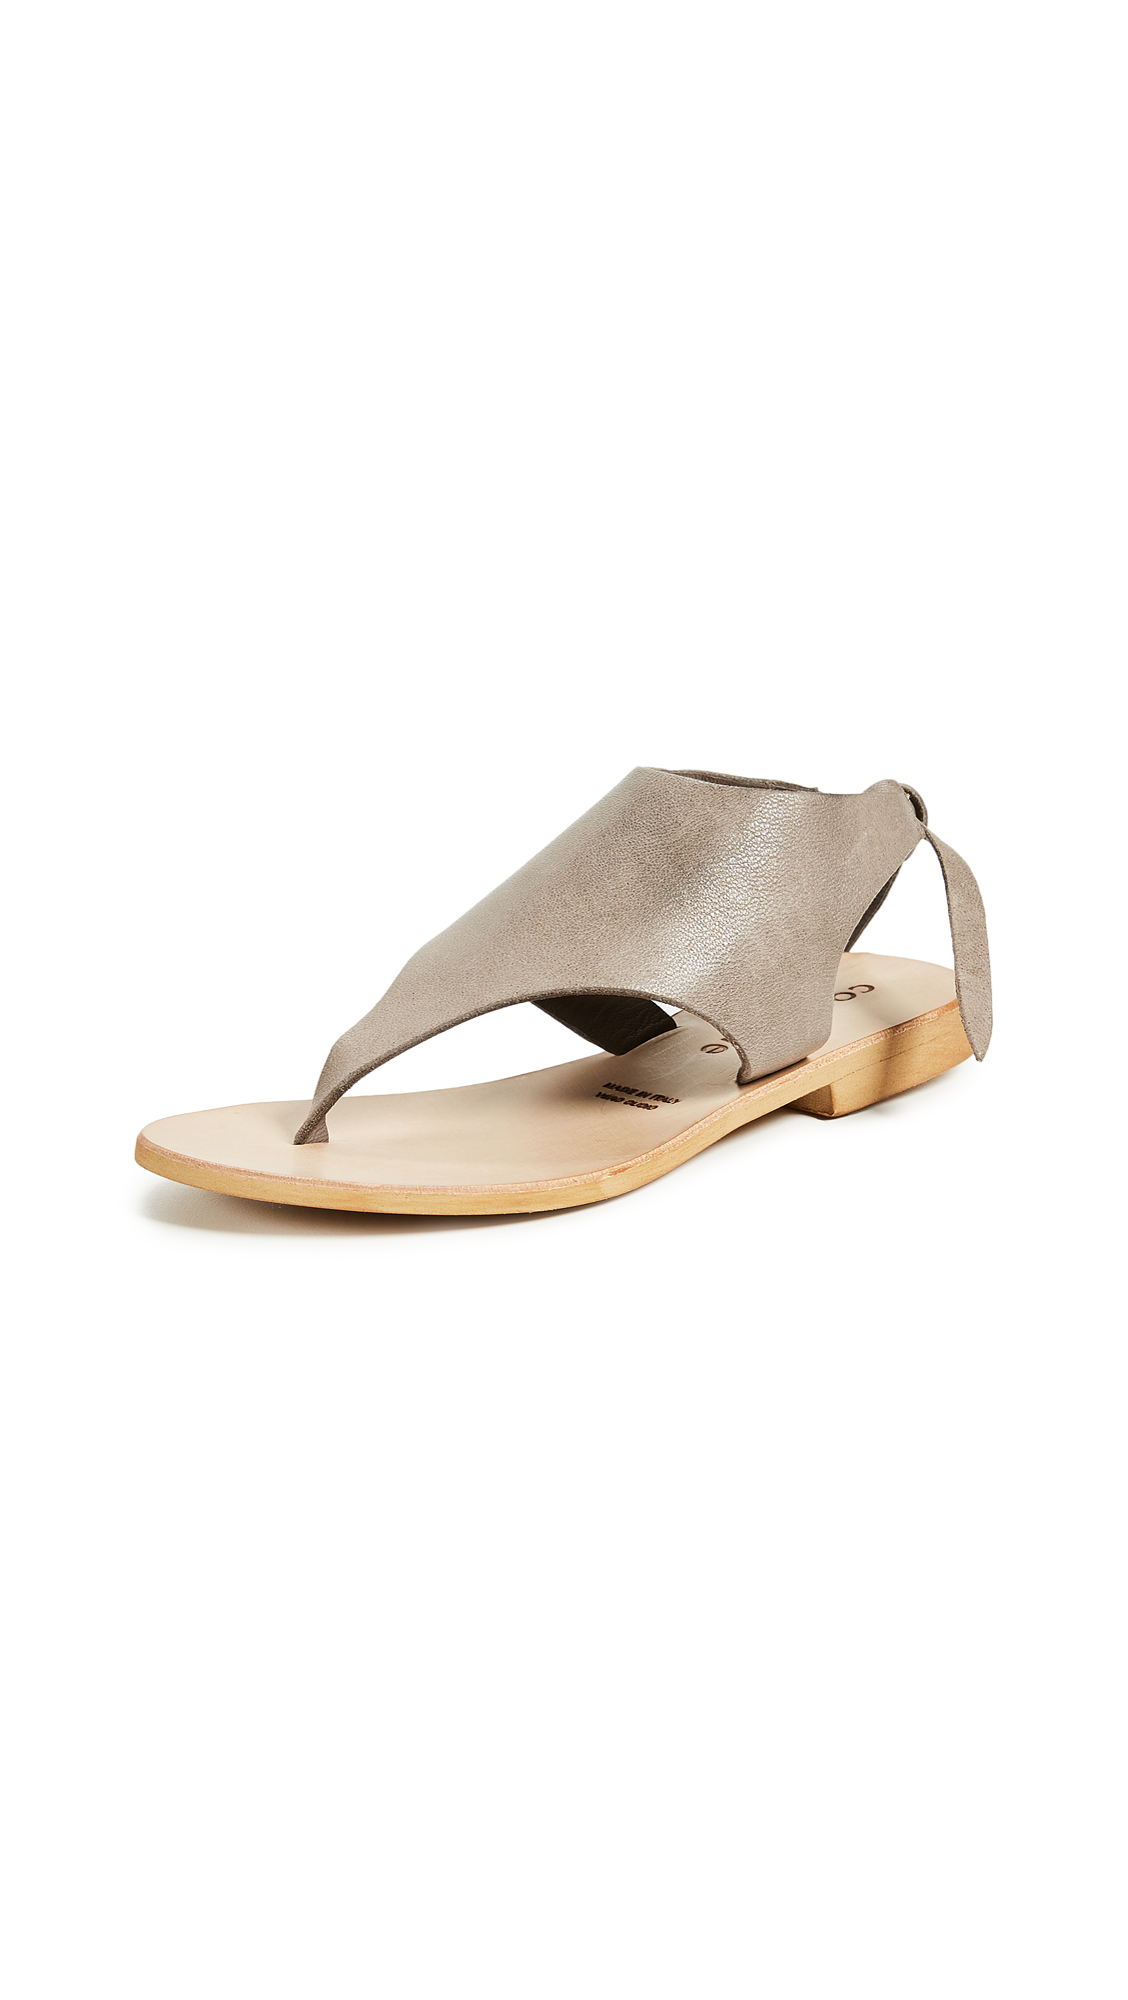 Cocobelle Tye Sandals - Gray